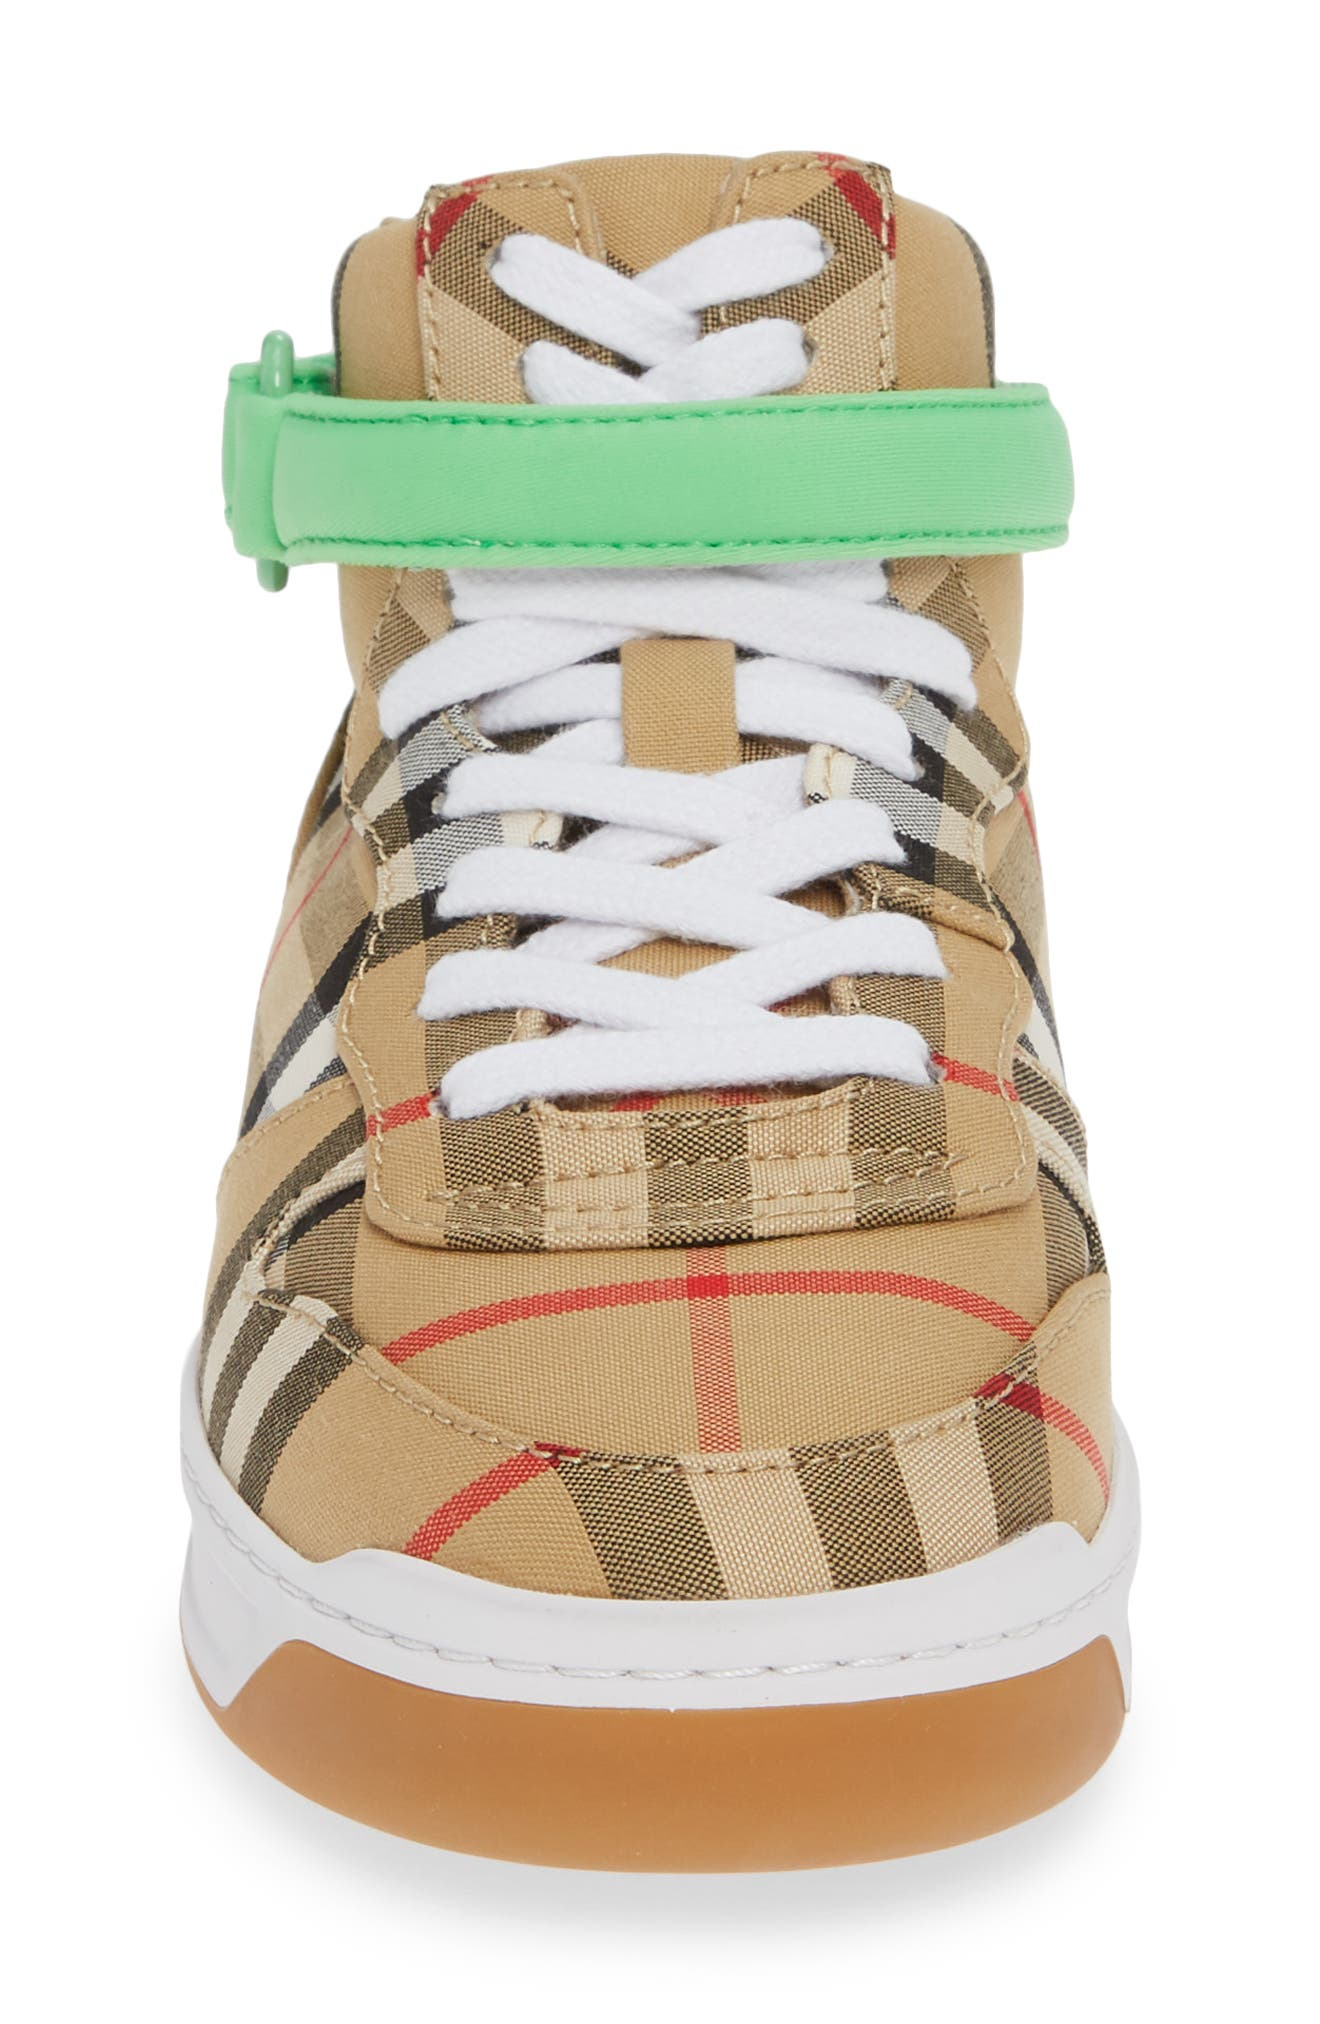 BURBERRY, Groves High Top Sneaker, Alternate thumbnail 4, color, NEON GREEN